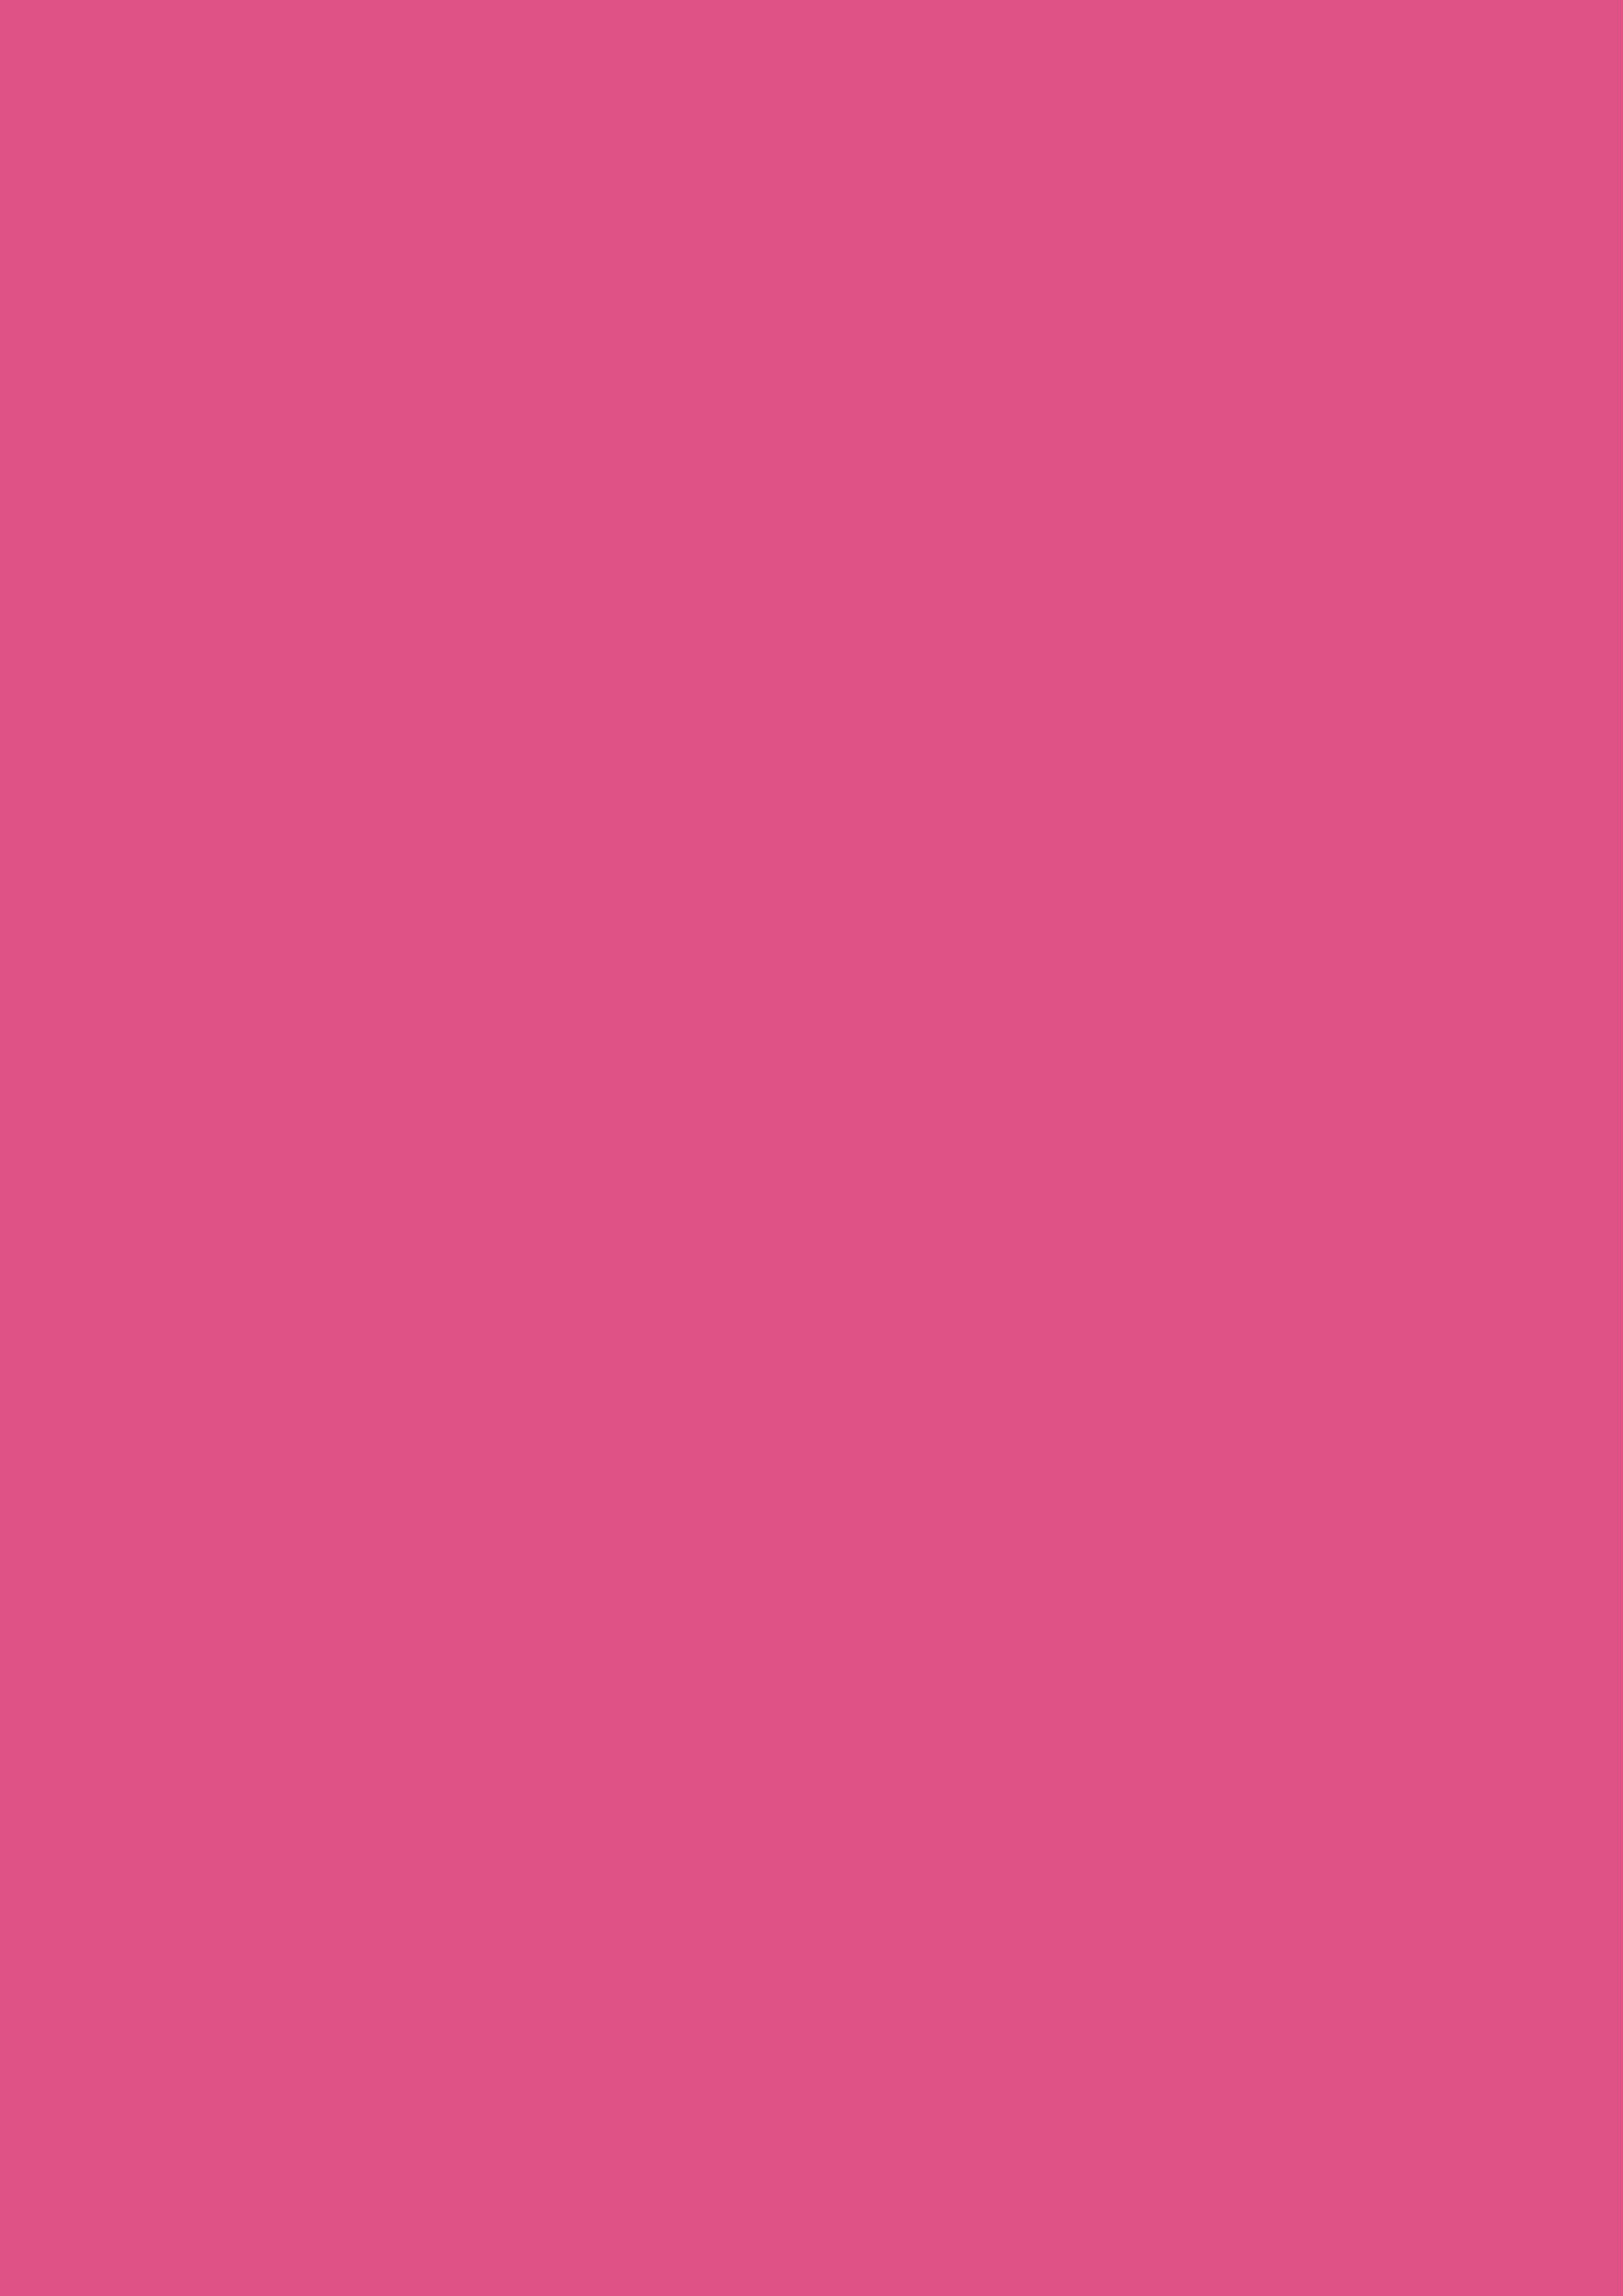 2480x3508 Fandango Pink Solid Color Background